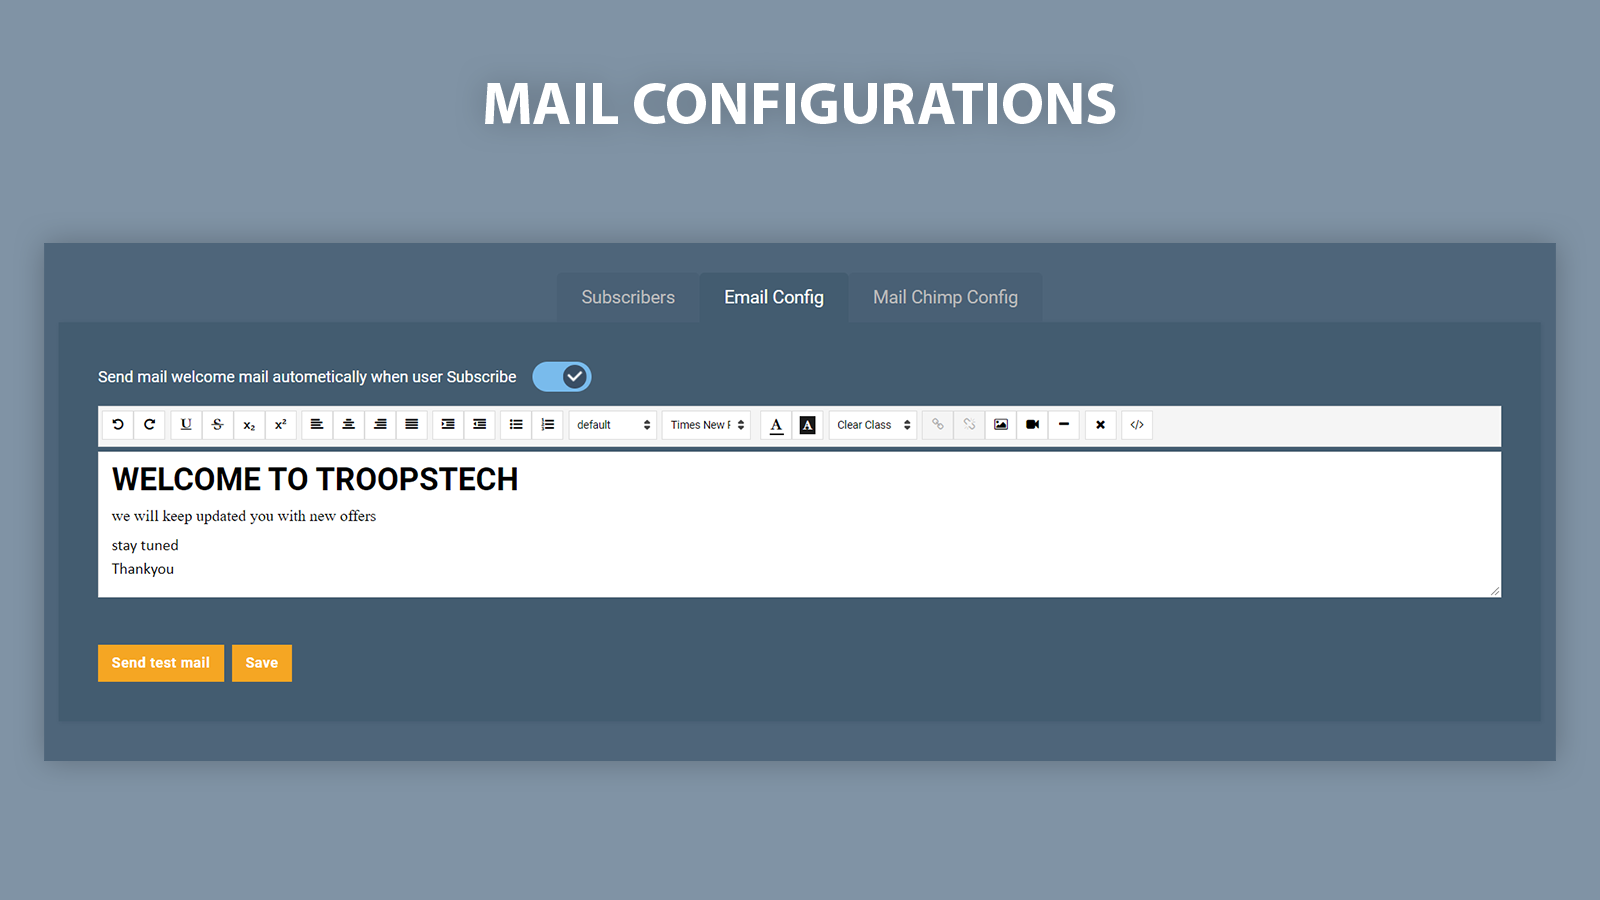 Configure Welcome email